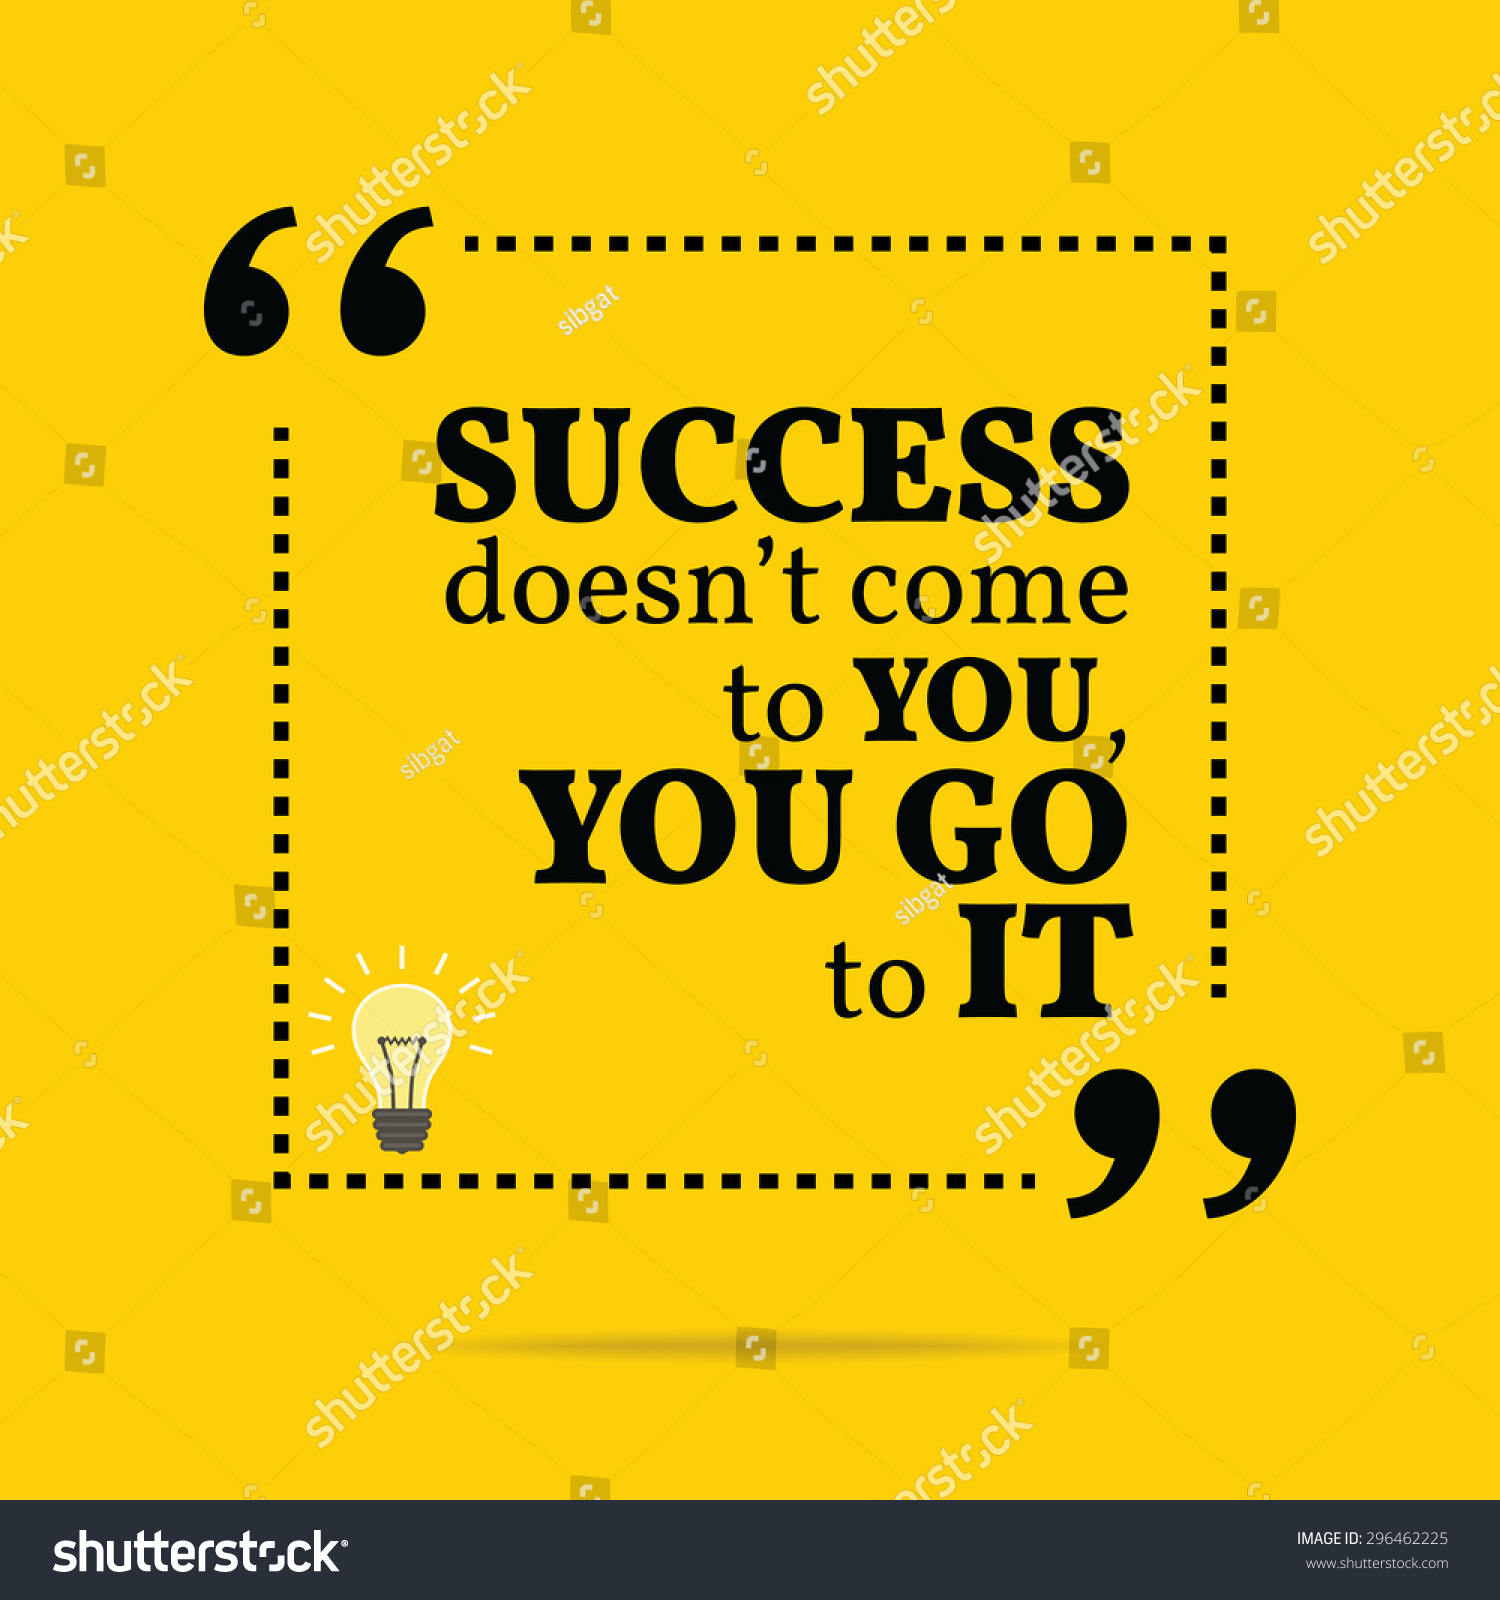 Simple Typography Spells Out A Powerful Motivation For: Inspirational Motivational Quote. Success Doesn'T Come To